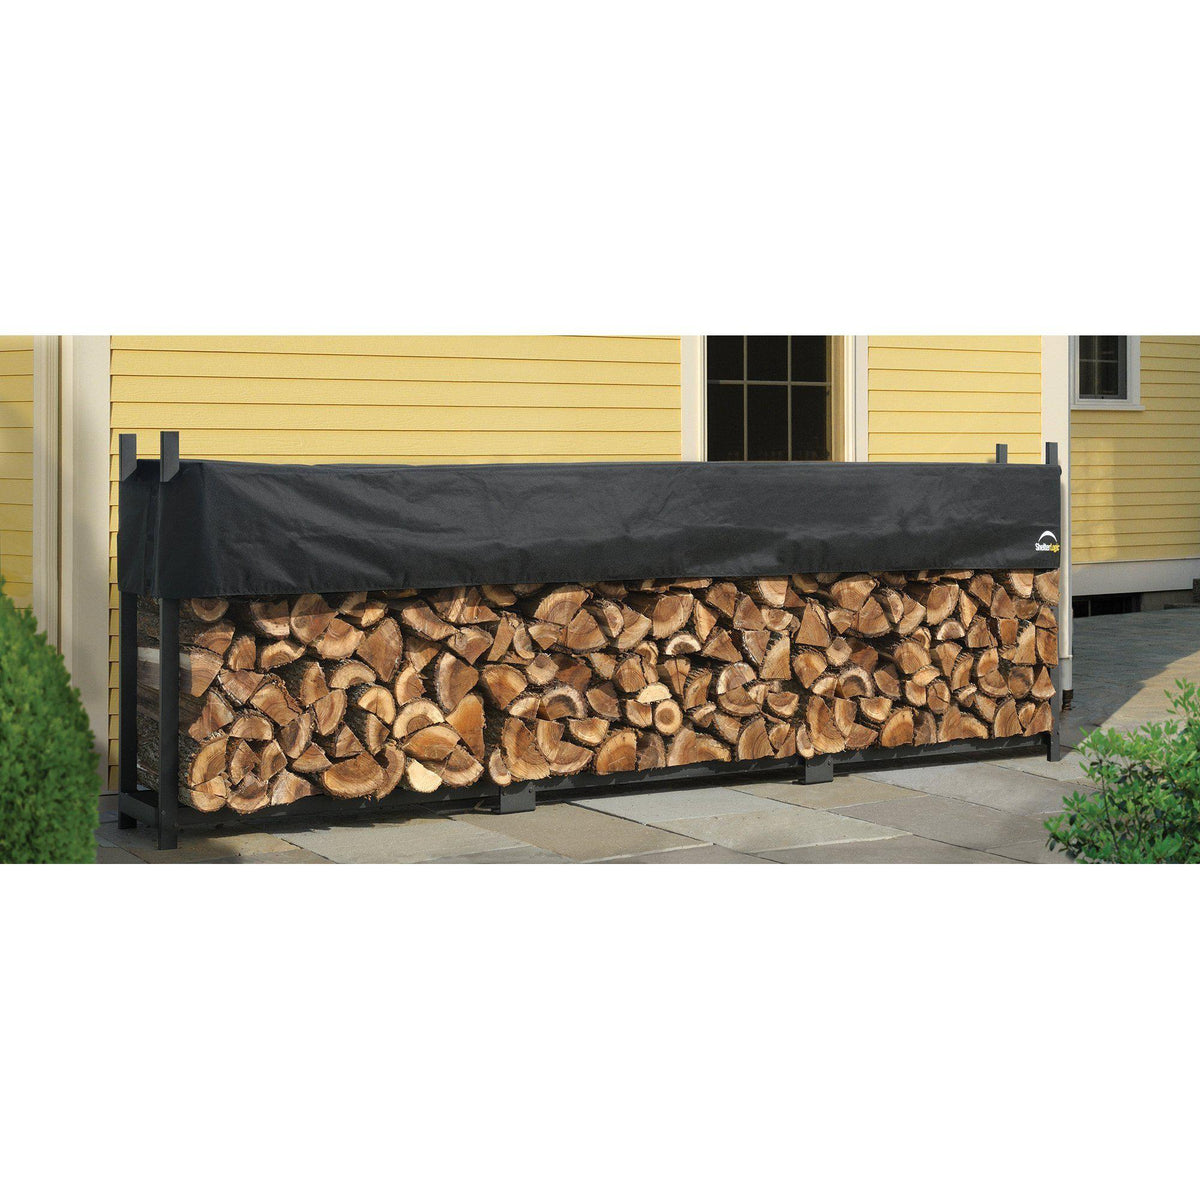 ShelterLogic Ultra Duty Firewood Rack with Cover, 8 ft.